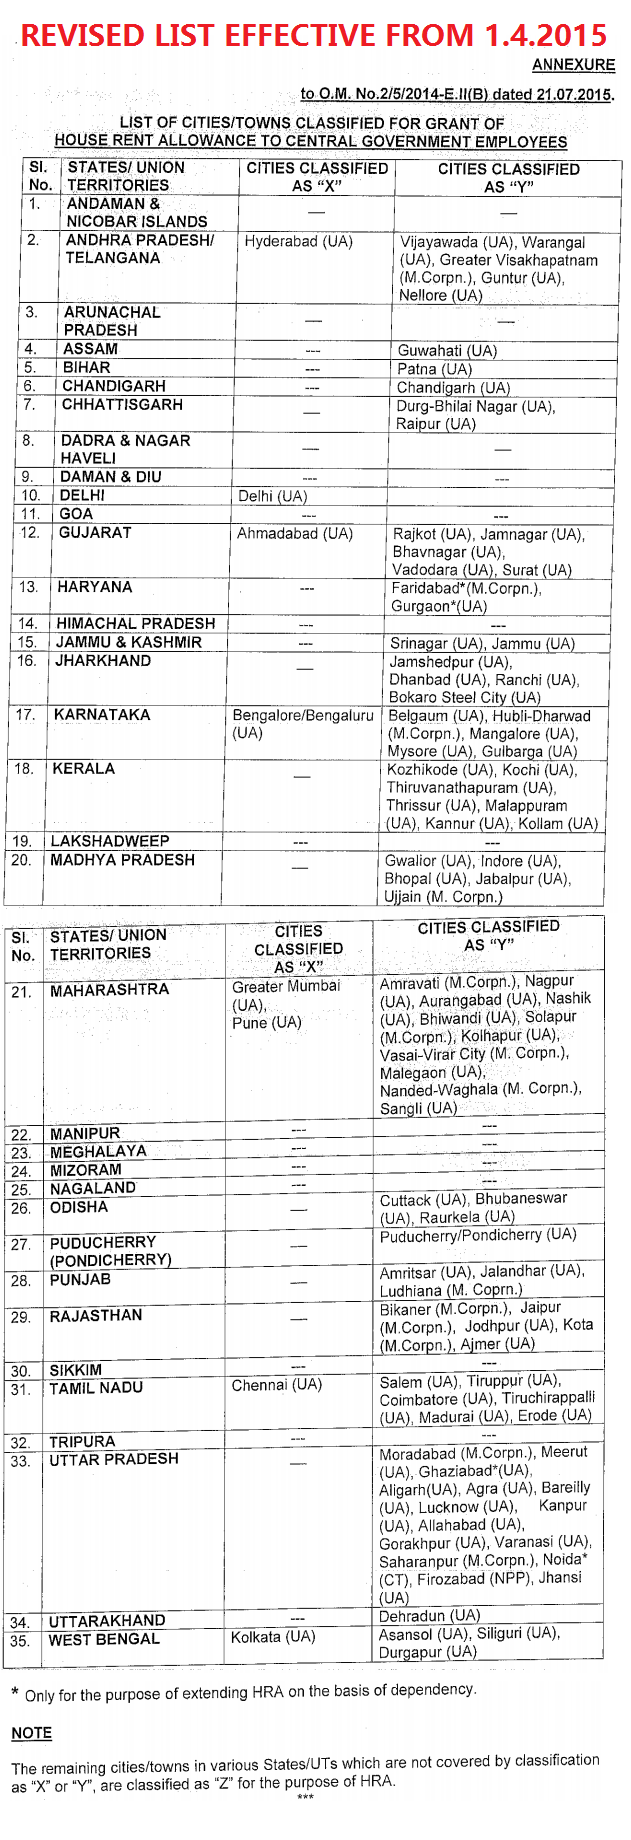 Revised list of citites towns effective from 1.4.2015